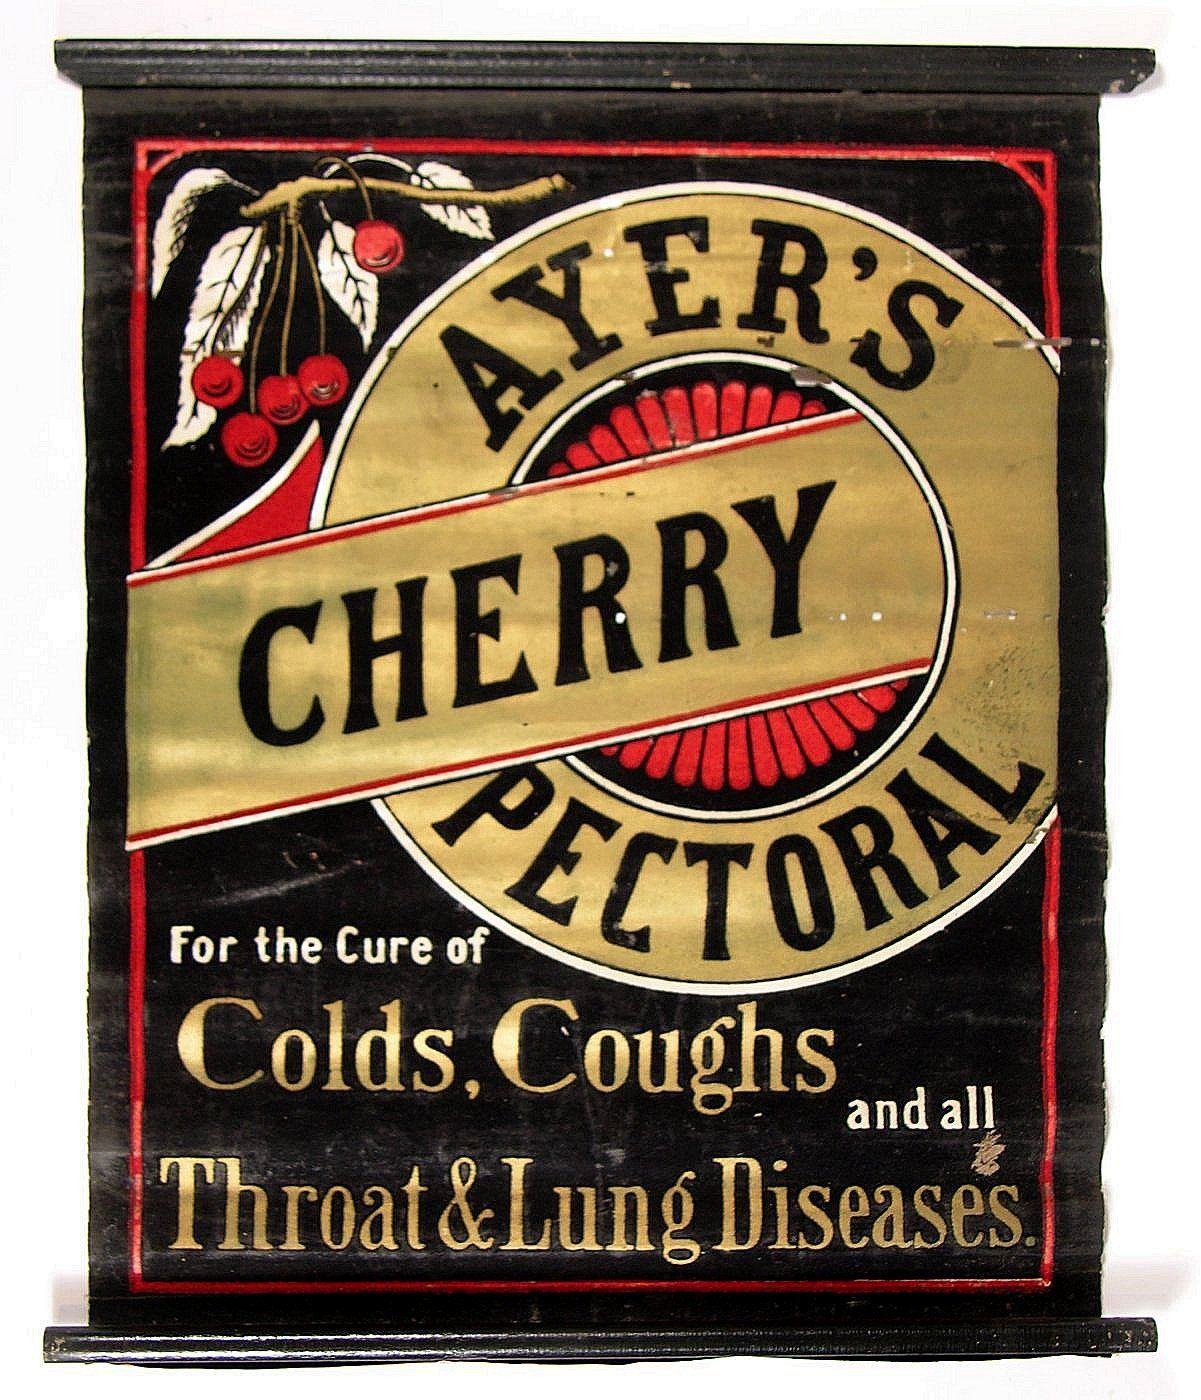 Ayer's Cherry Pectoral Cough Cold Remedy Wood Sign, Lowell, MA., Circa 1895